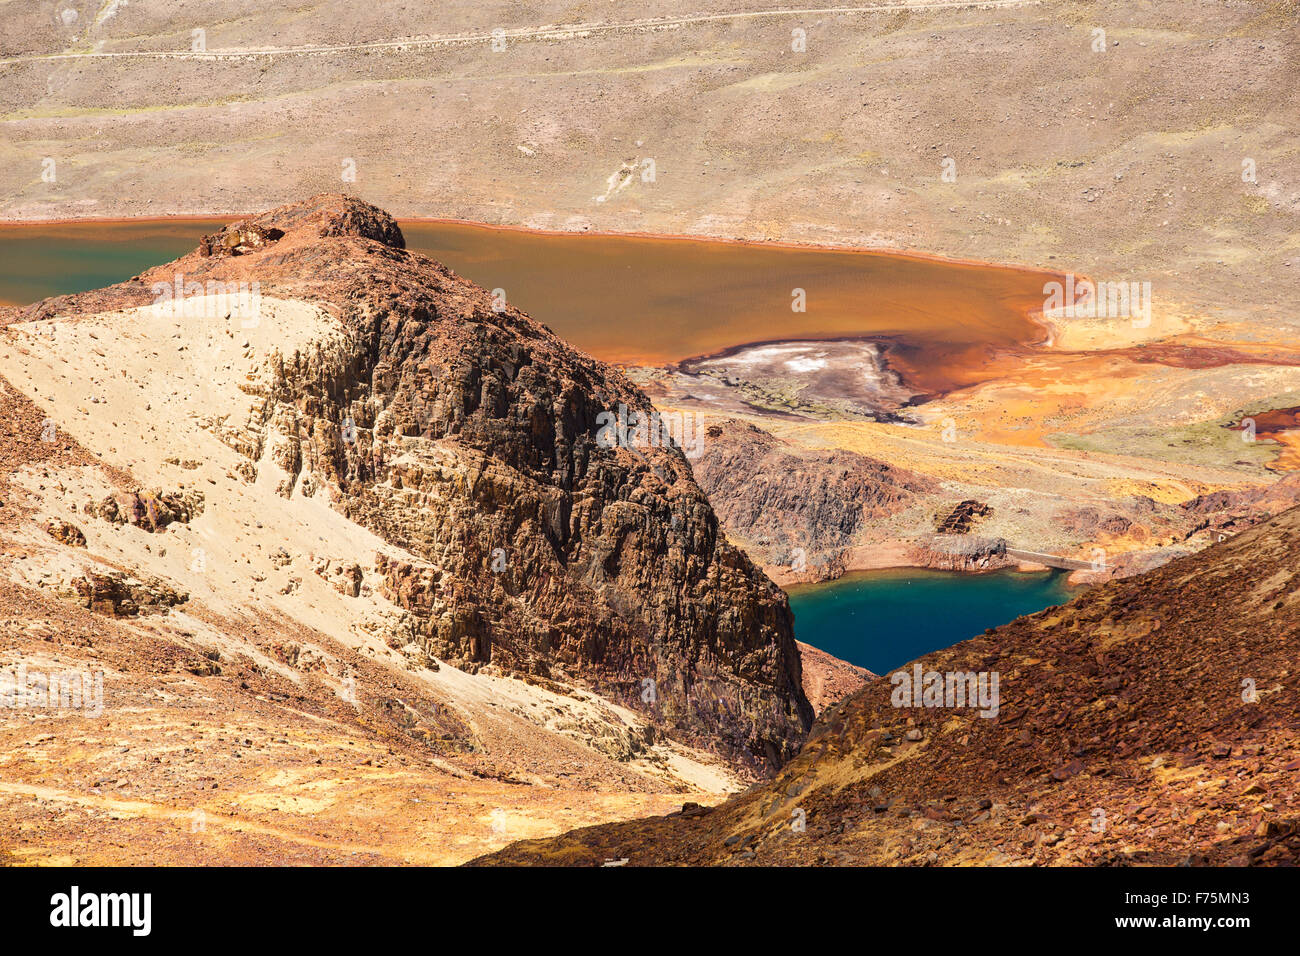 A lake below the peak of Chacaltaya in the Bolivian Andes discoloured by mine effluent contamination. - Stock Image